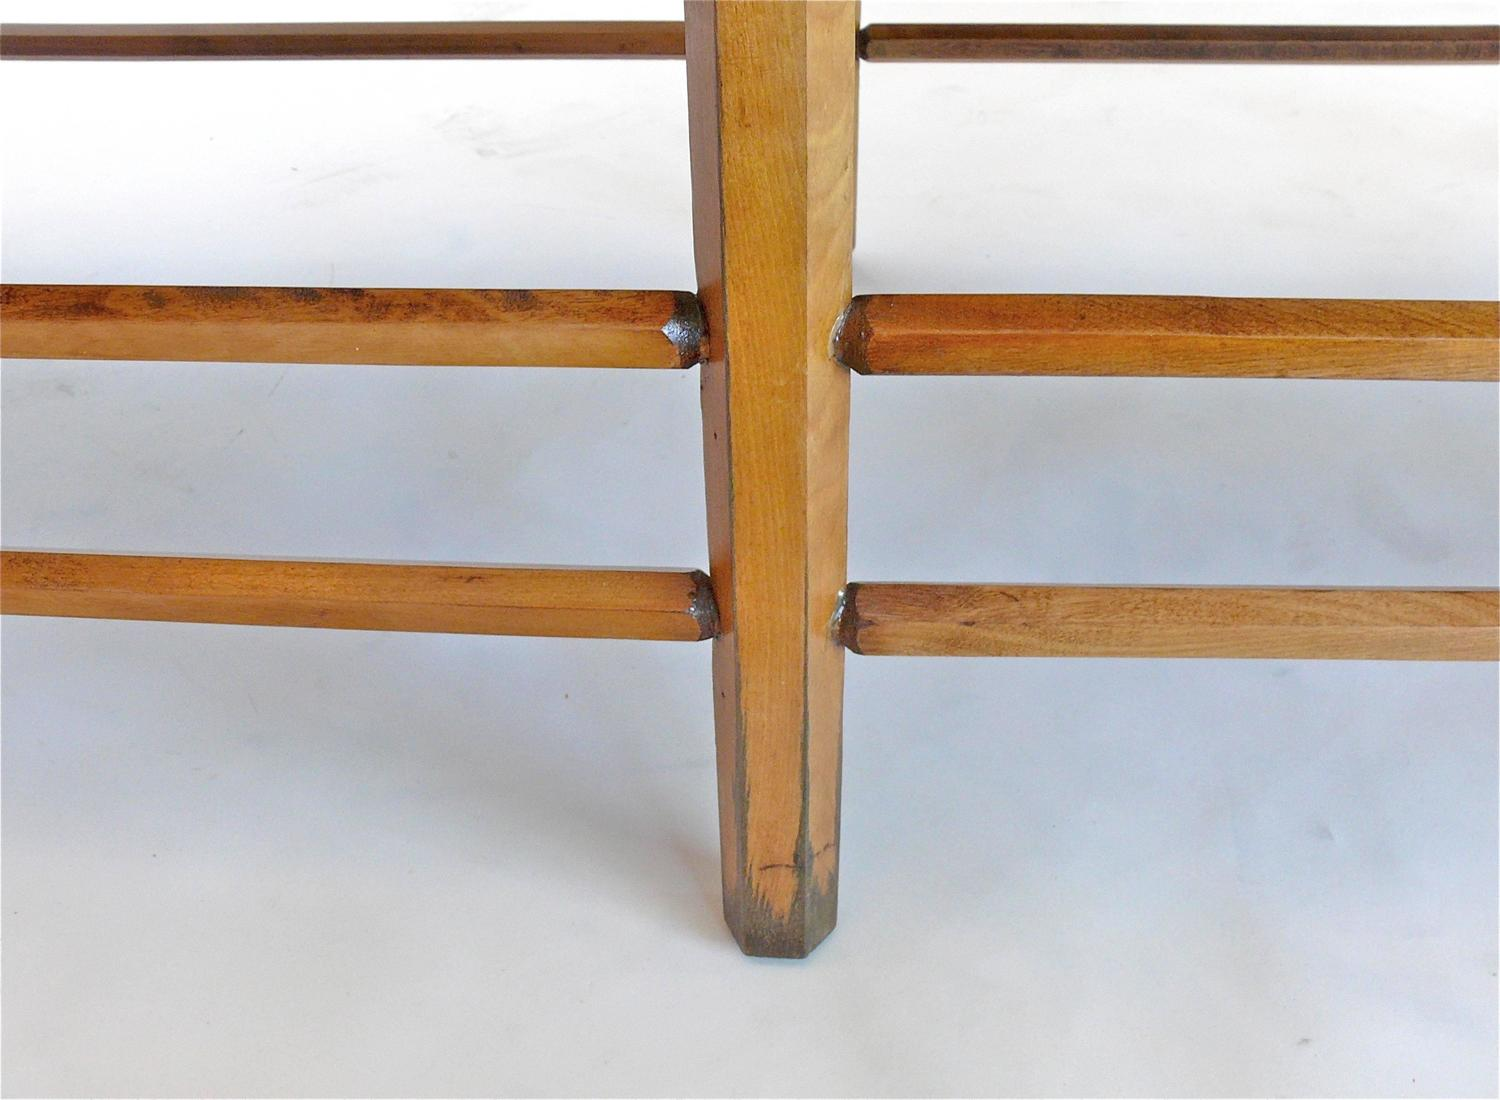 Wicker chaise longue for sale at 1stdibs for Cane chaise longue